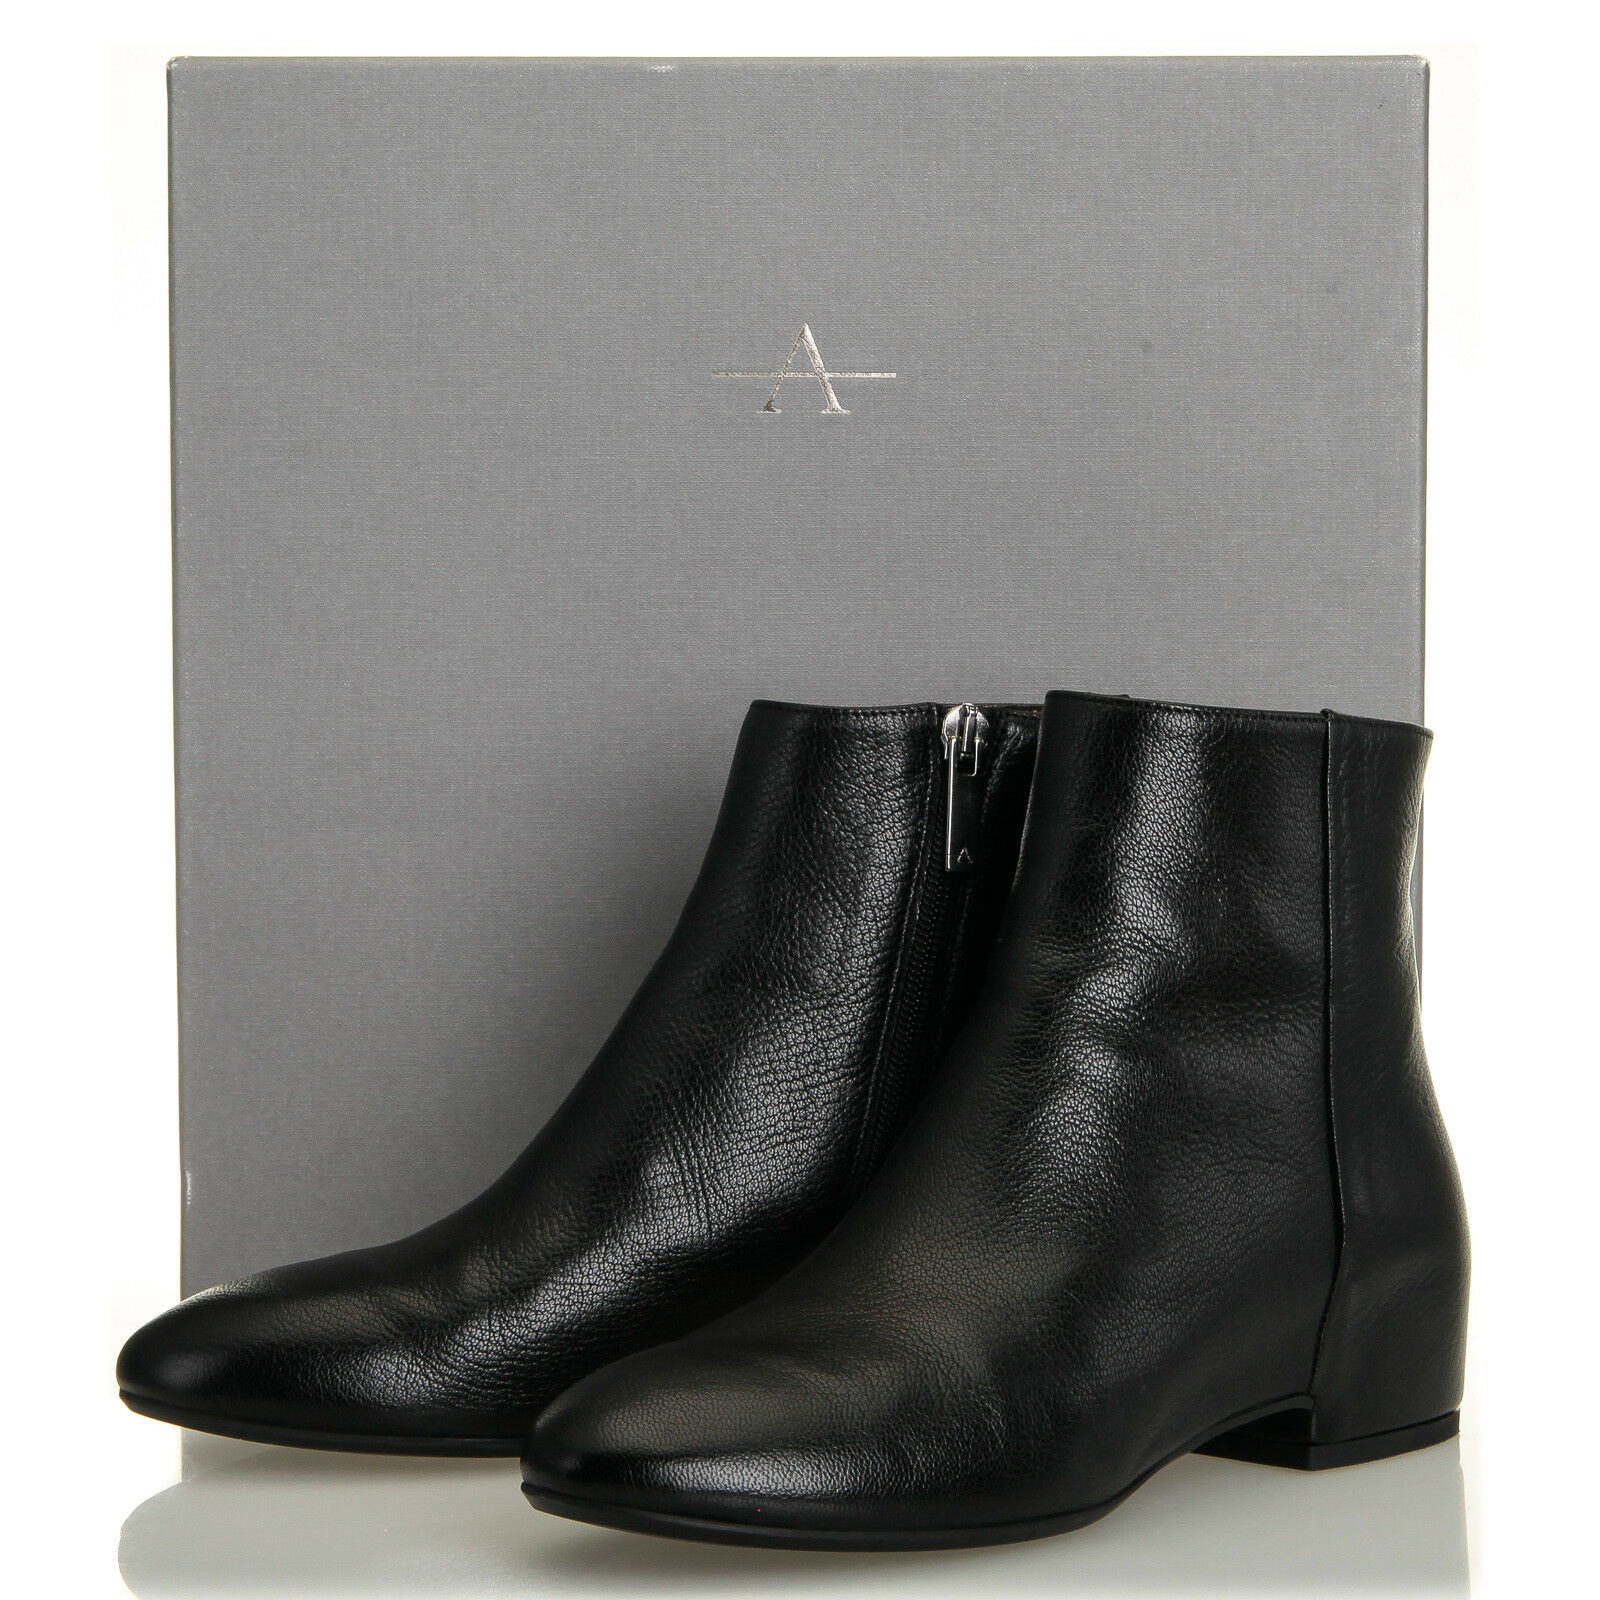 Aquatalia Uri Dolomite Black Pebbled Leather Bootie - Womens 7.5 M (Italy)